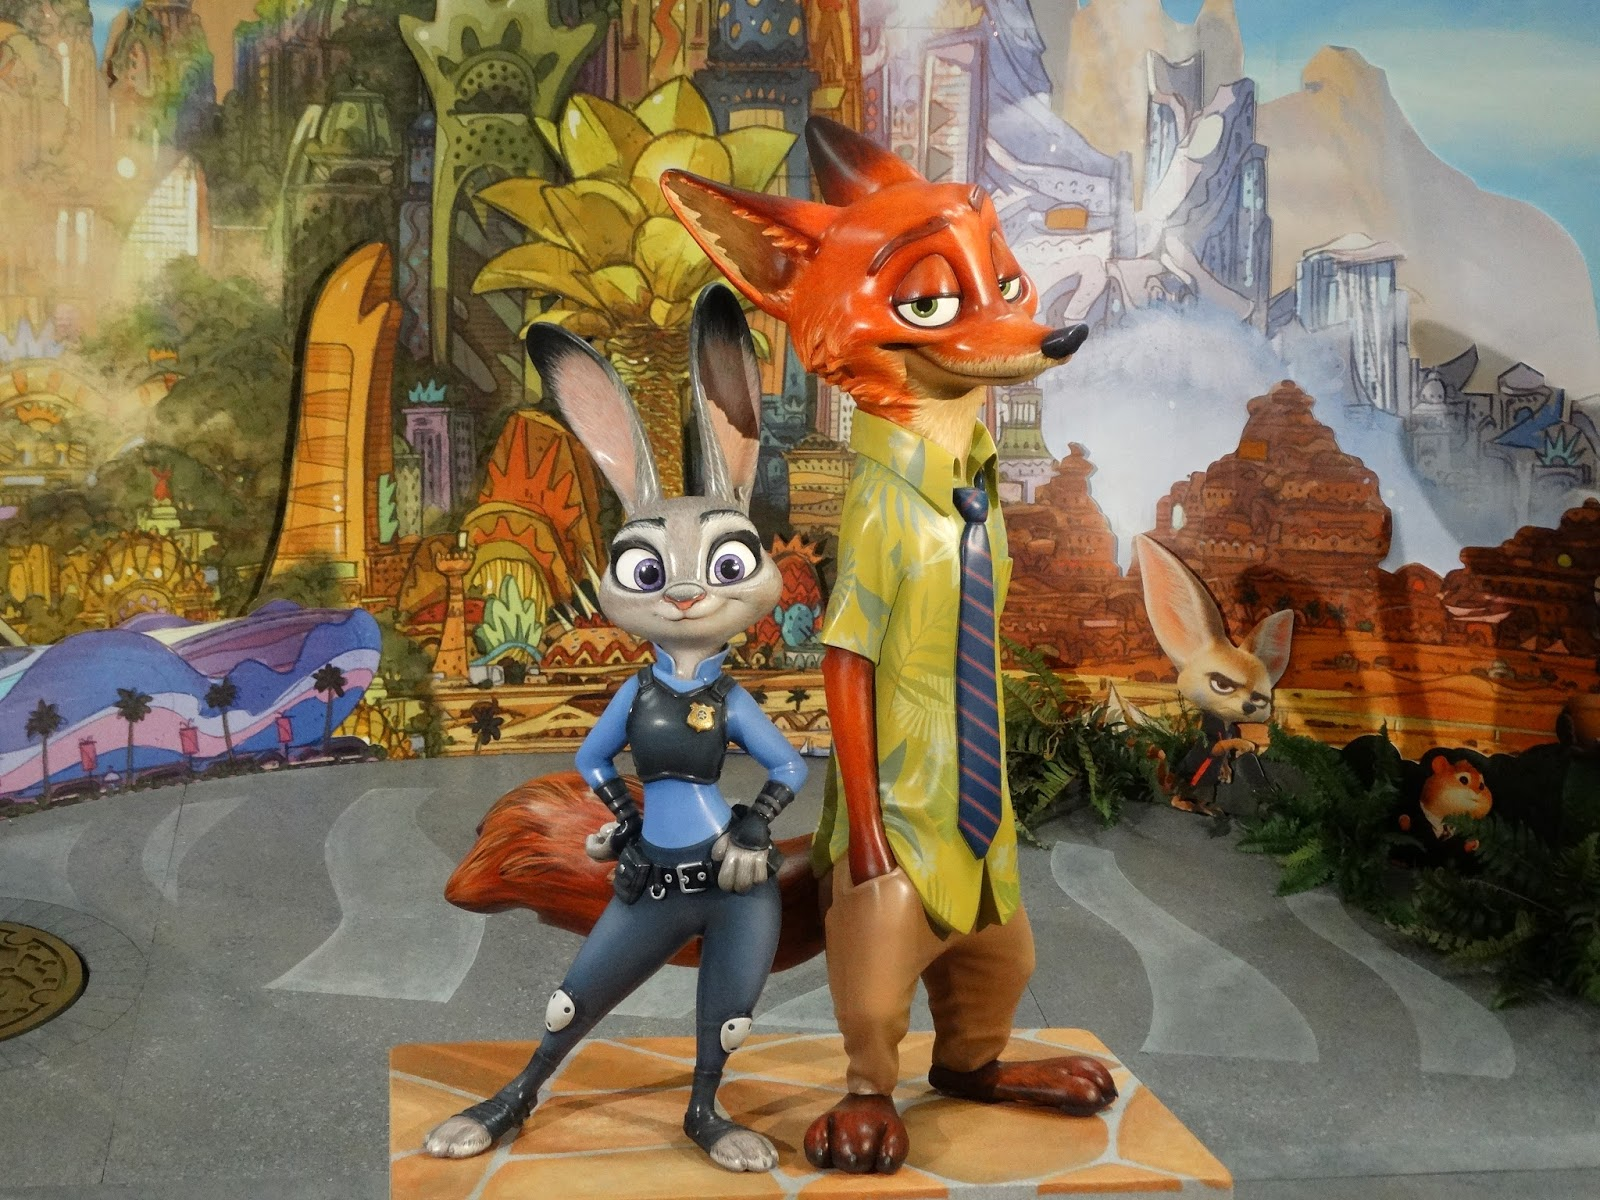 Clear Wallpaper Iphone X Zootopia Wallpapers 2016 Boss Wallpapers 5k 4k And 8k